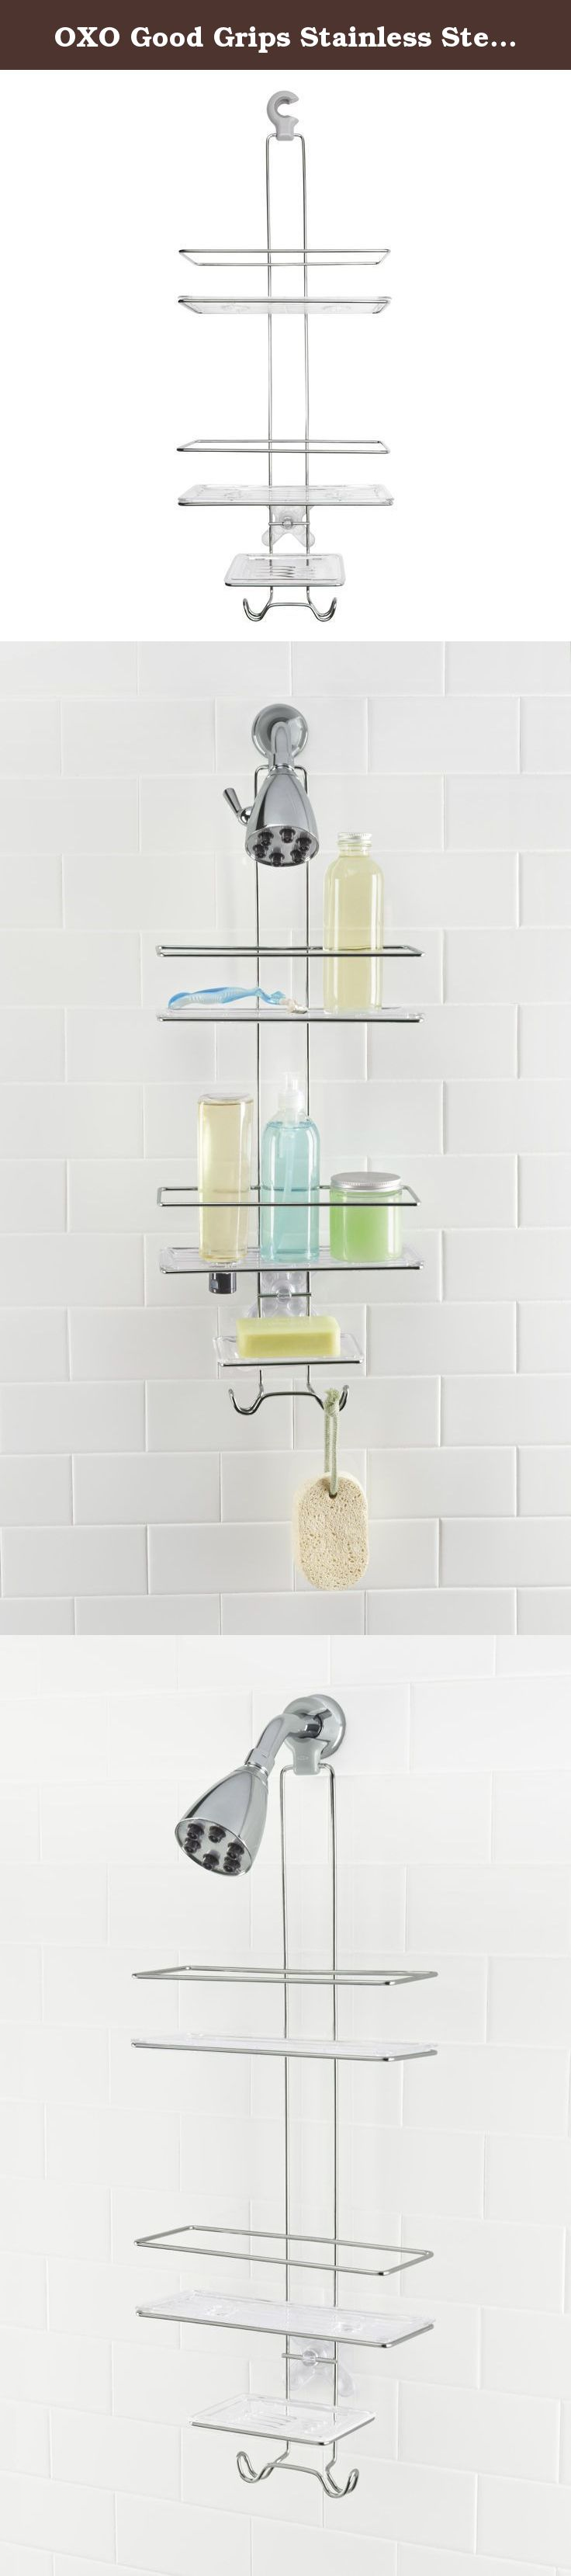 OXO Good Grips Stainless Steel Shower Caddy. Get more storage space ...